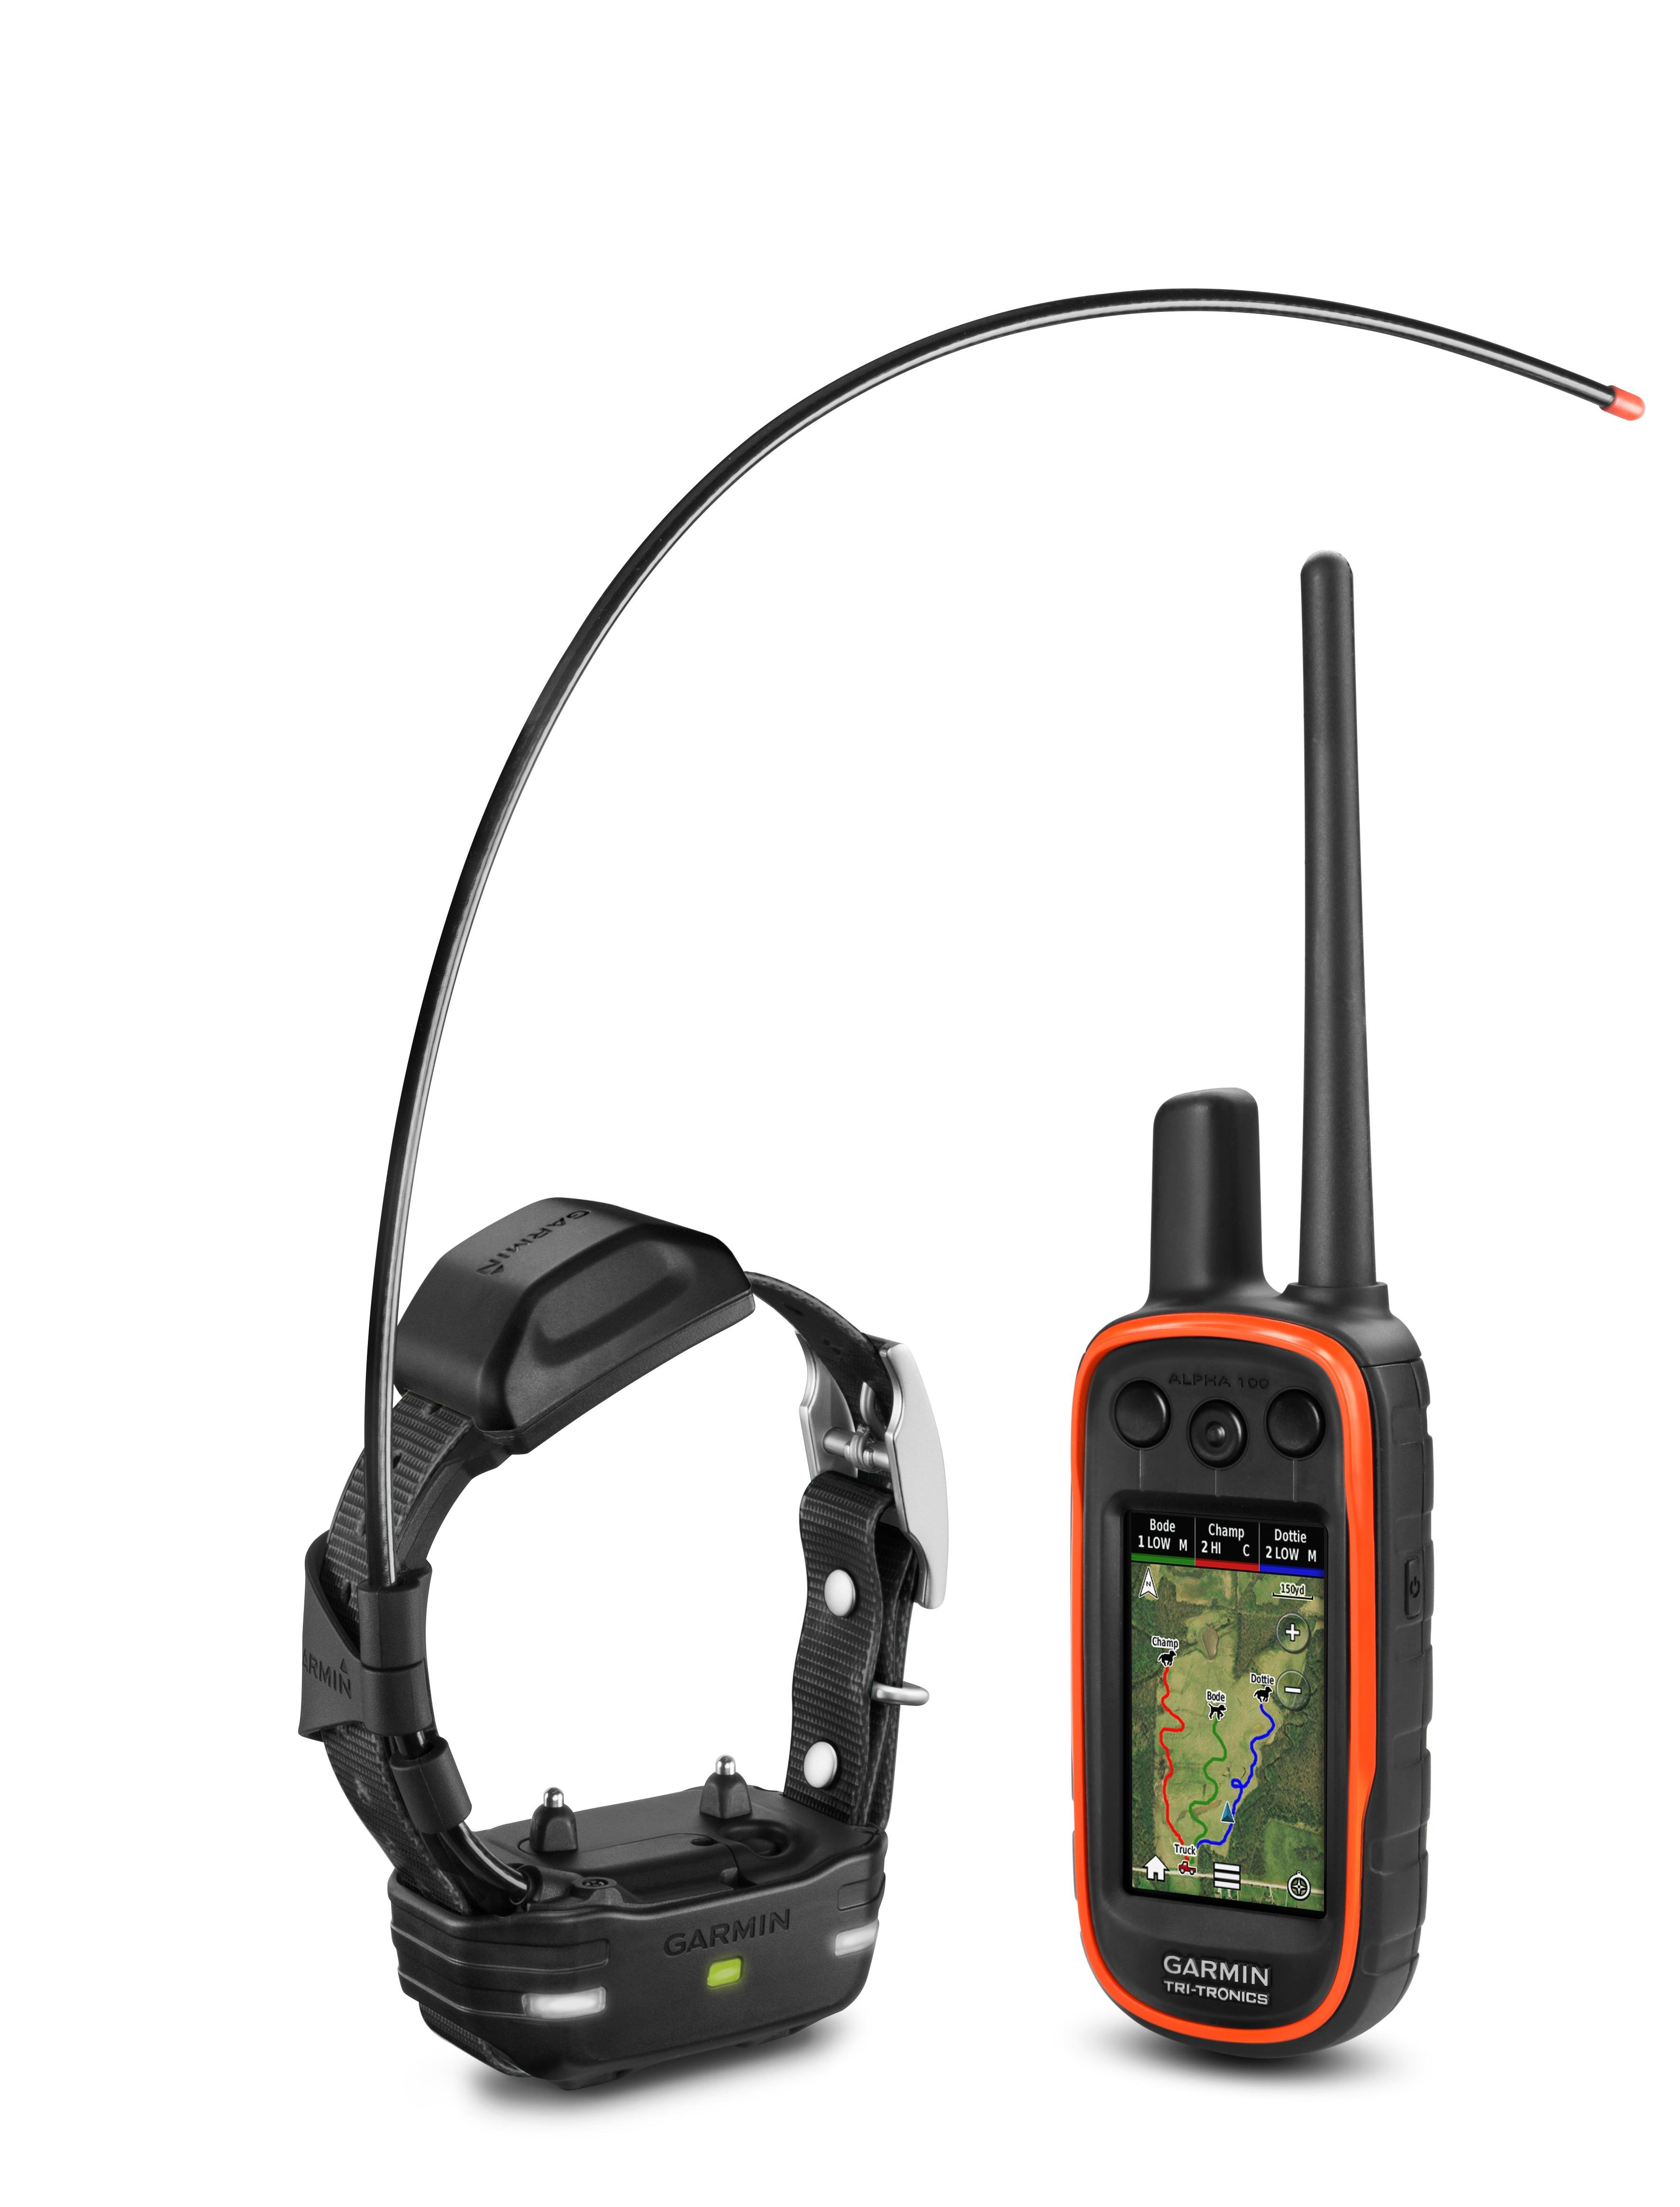 Border Patrol Tc1 De Systems Gps Invisible Fence Training Collar in addition Wholesale Gps Sticker Tracker in addition Gps And Vhf Tracking Collars Used For Wildlife Monitoring furthermore 351664920145 as well Kim Kardashian Kanye West Marry Privately n 5234378. on dog gps tracking device